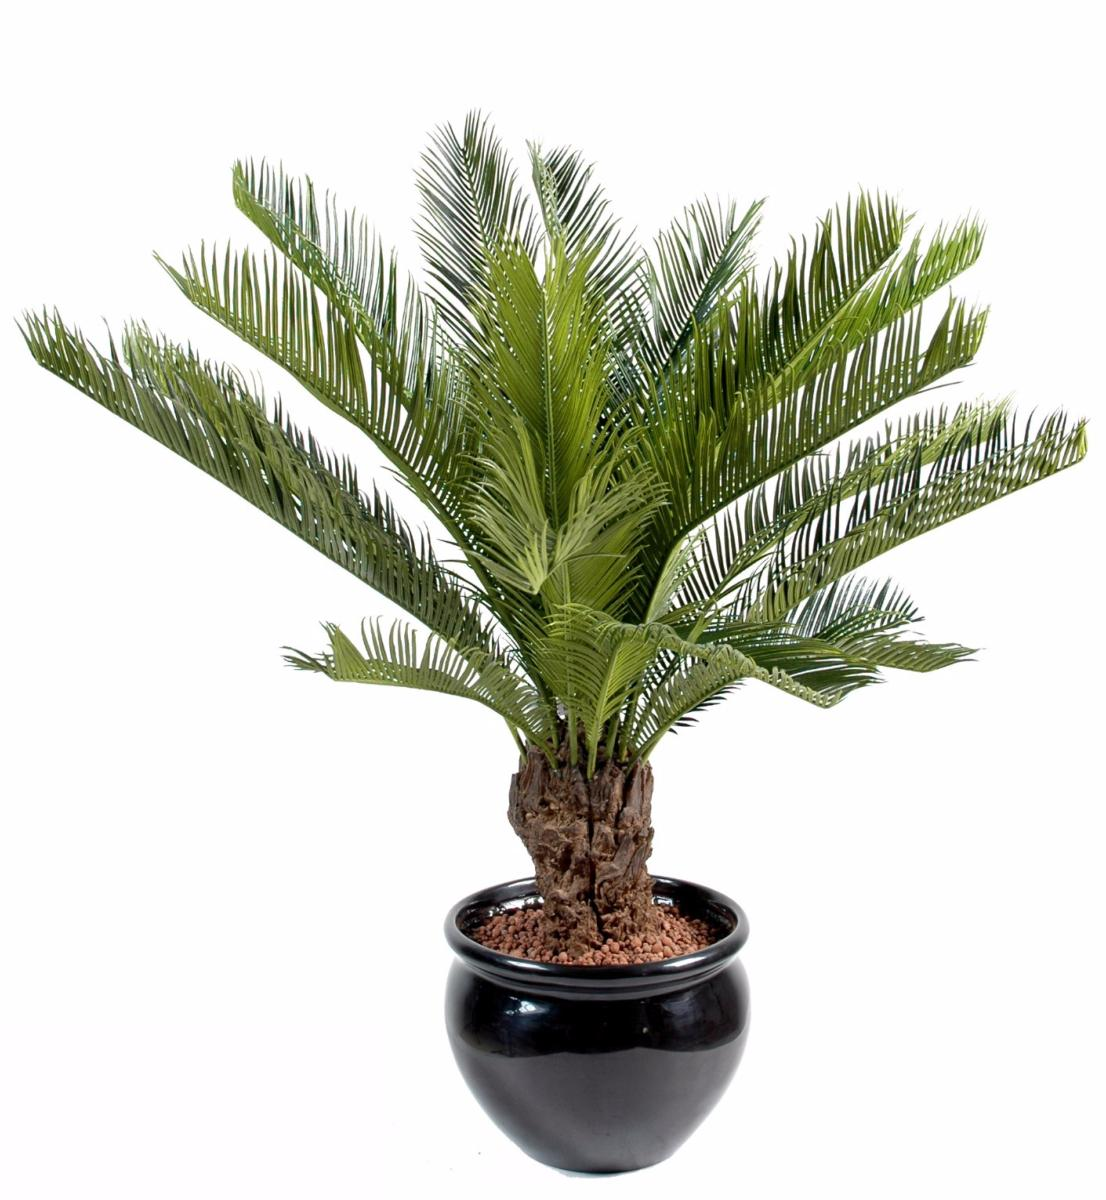 Palmier artificiel cycas tronc plante int rieur for Plantes fleuries exterieur en pot